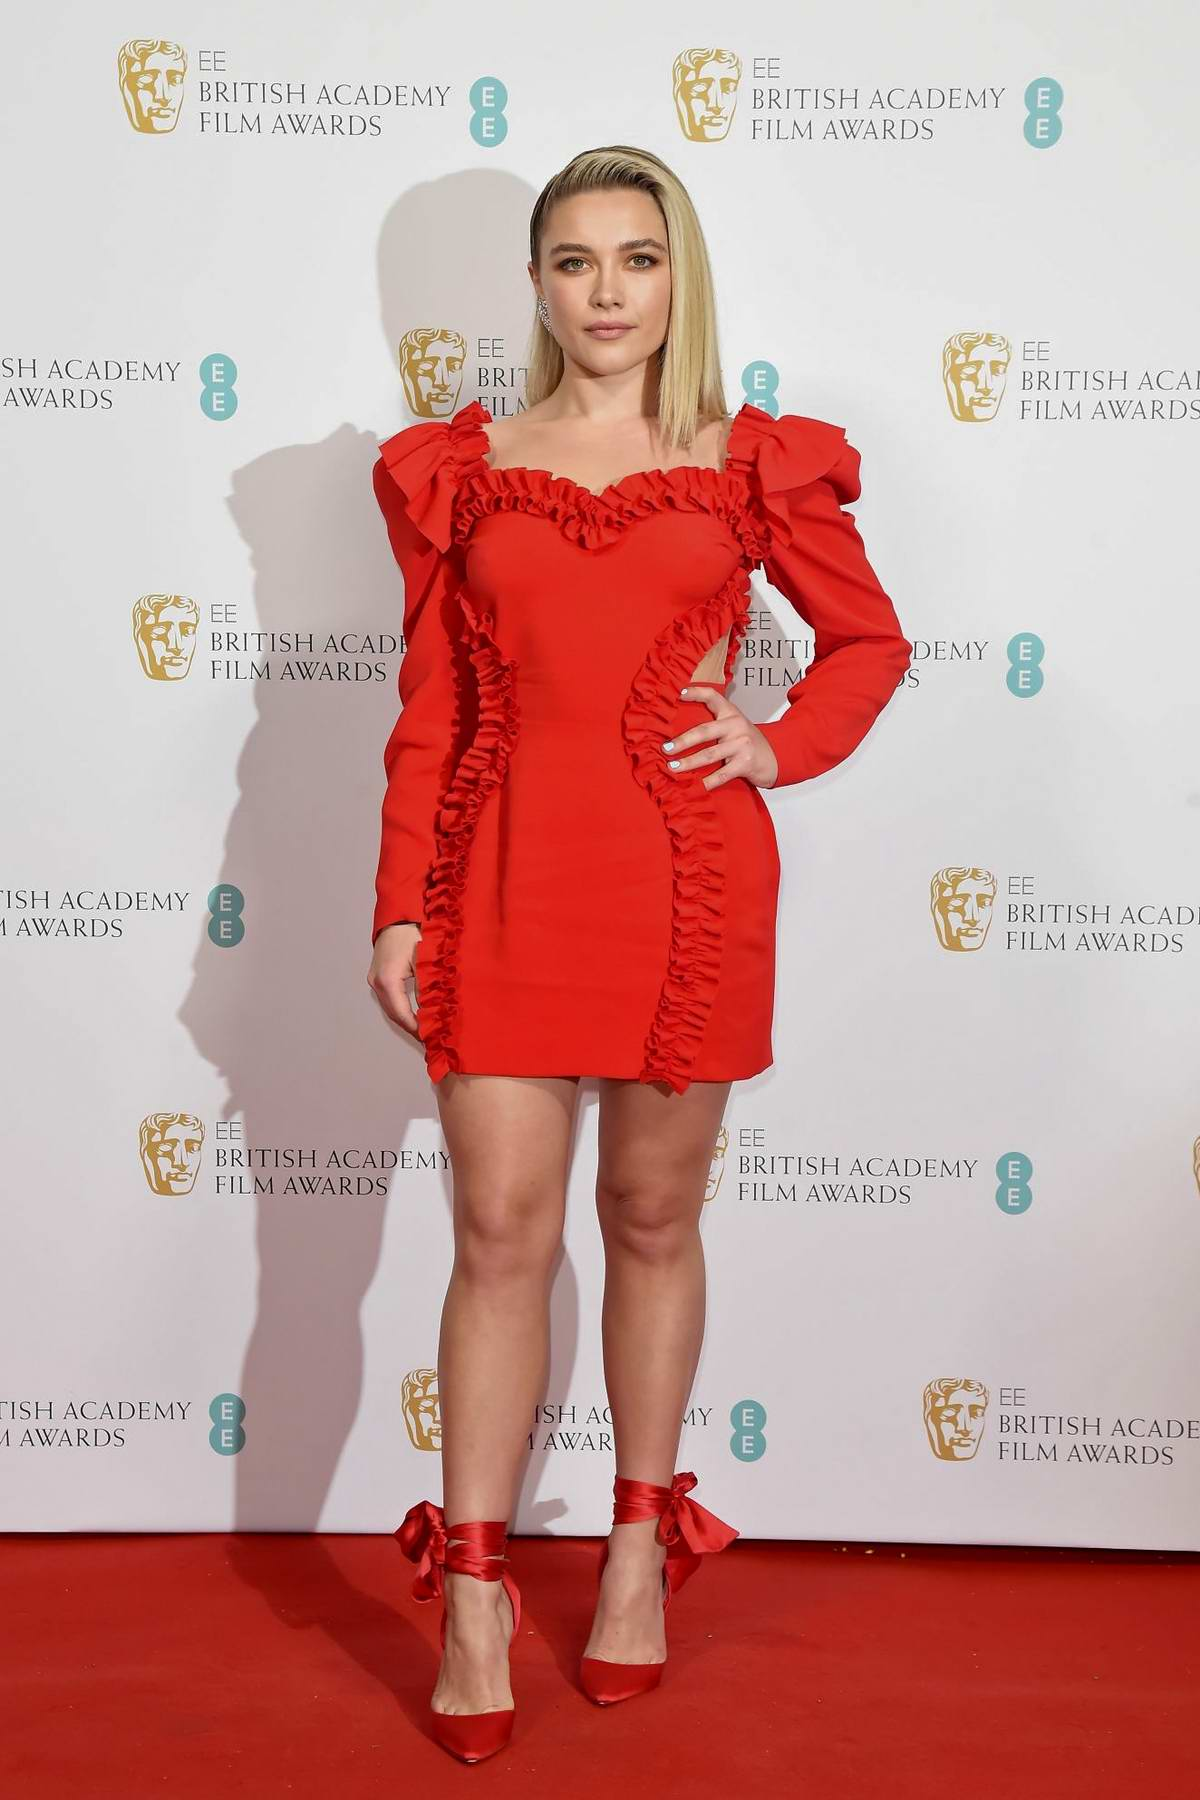 Florence Pugh attends the EE British Academy Film Awards 2020 Nominees Party in London, UK